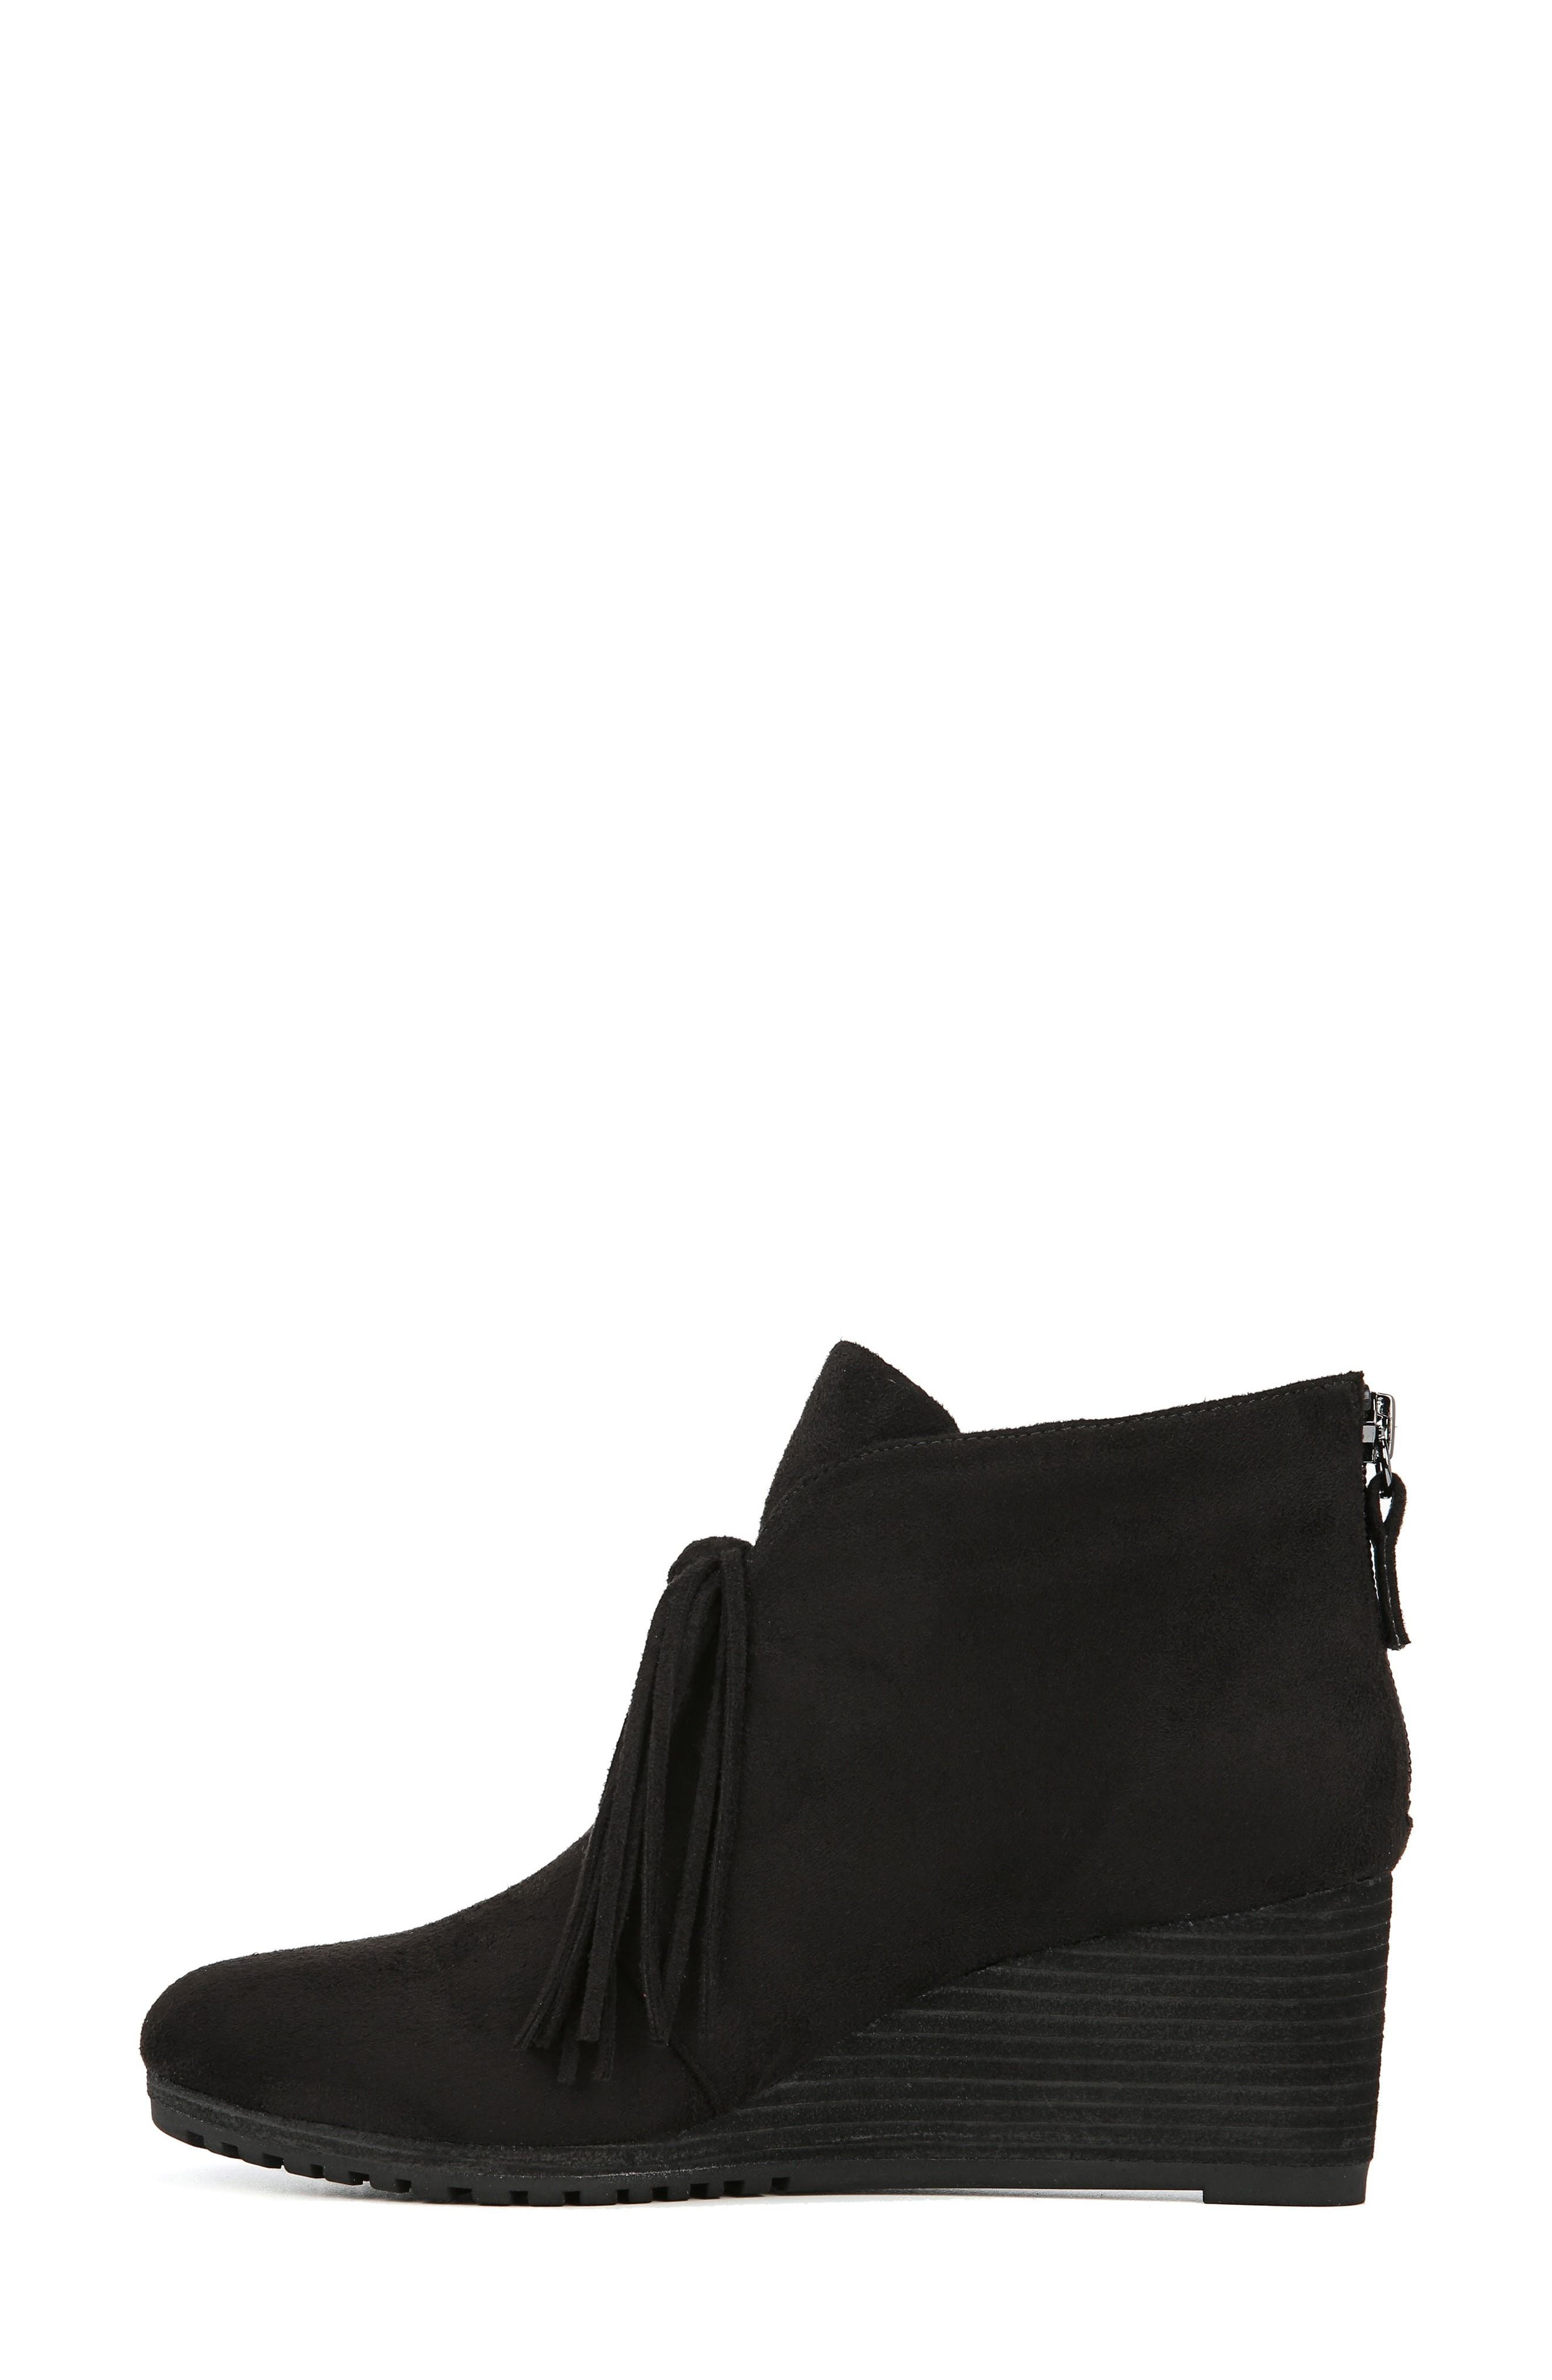 Classify Tassel Wedge Bootie,                             Alternate thumbnail 7, color,                             BLACK FABRIC